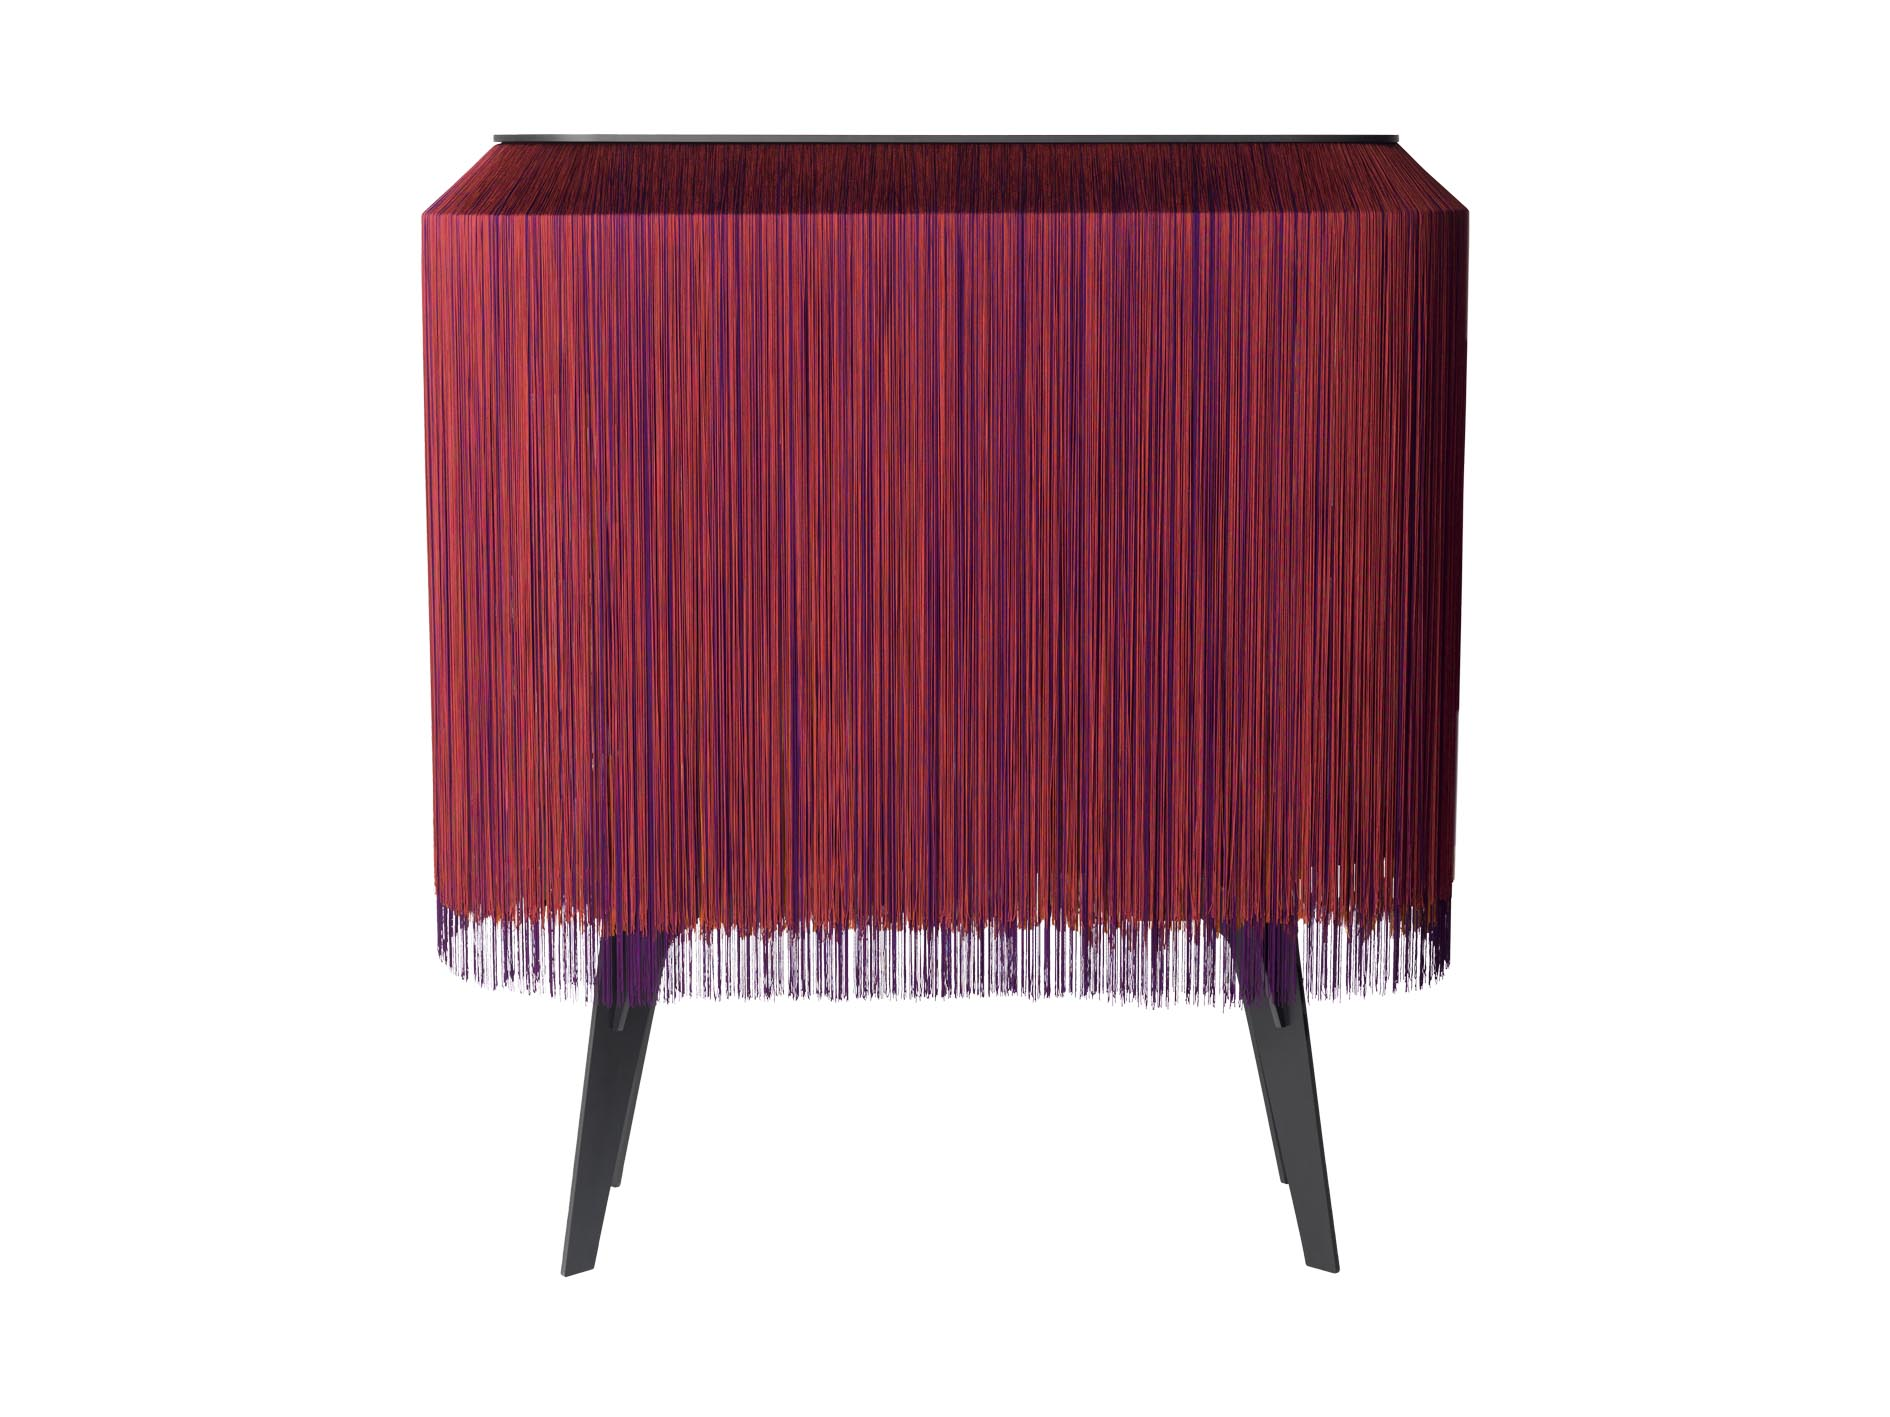 Stratifié Compact Sur Mesure alpaga | bar cabinet alpaga collectionibride design